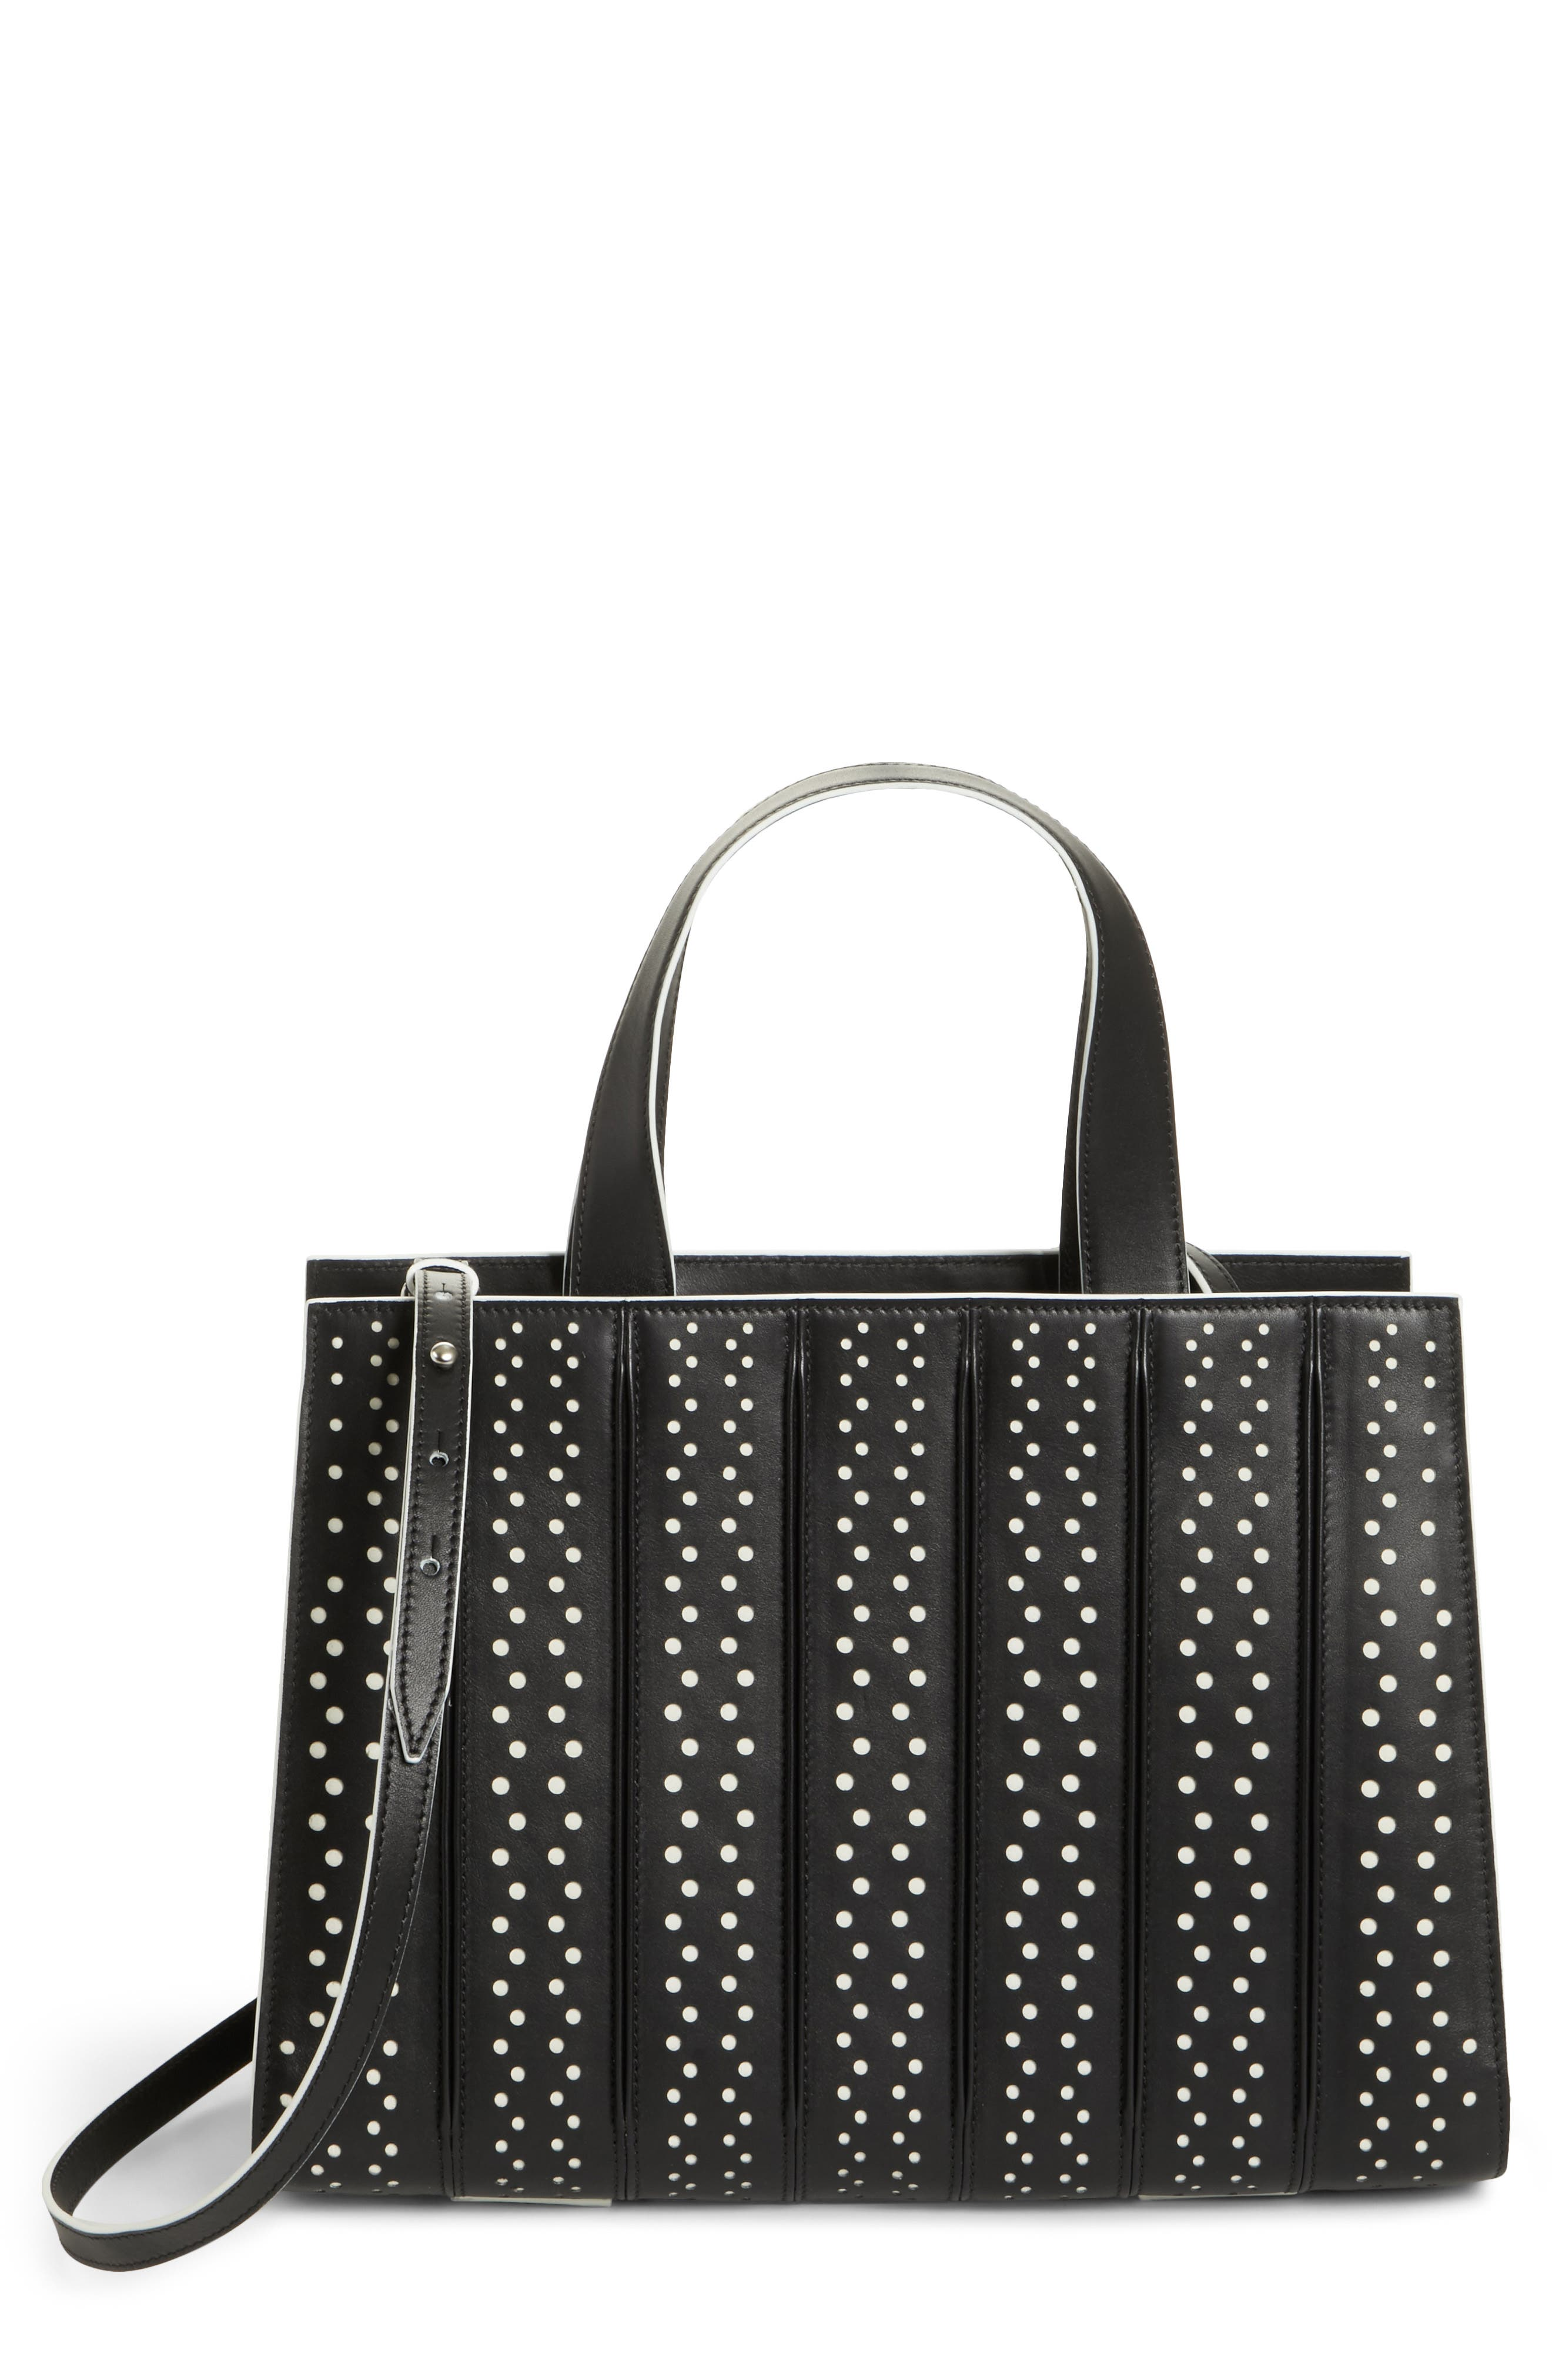 Medium Whitney Polka Dot Leather Tote,                         Main,                         color, 001